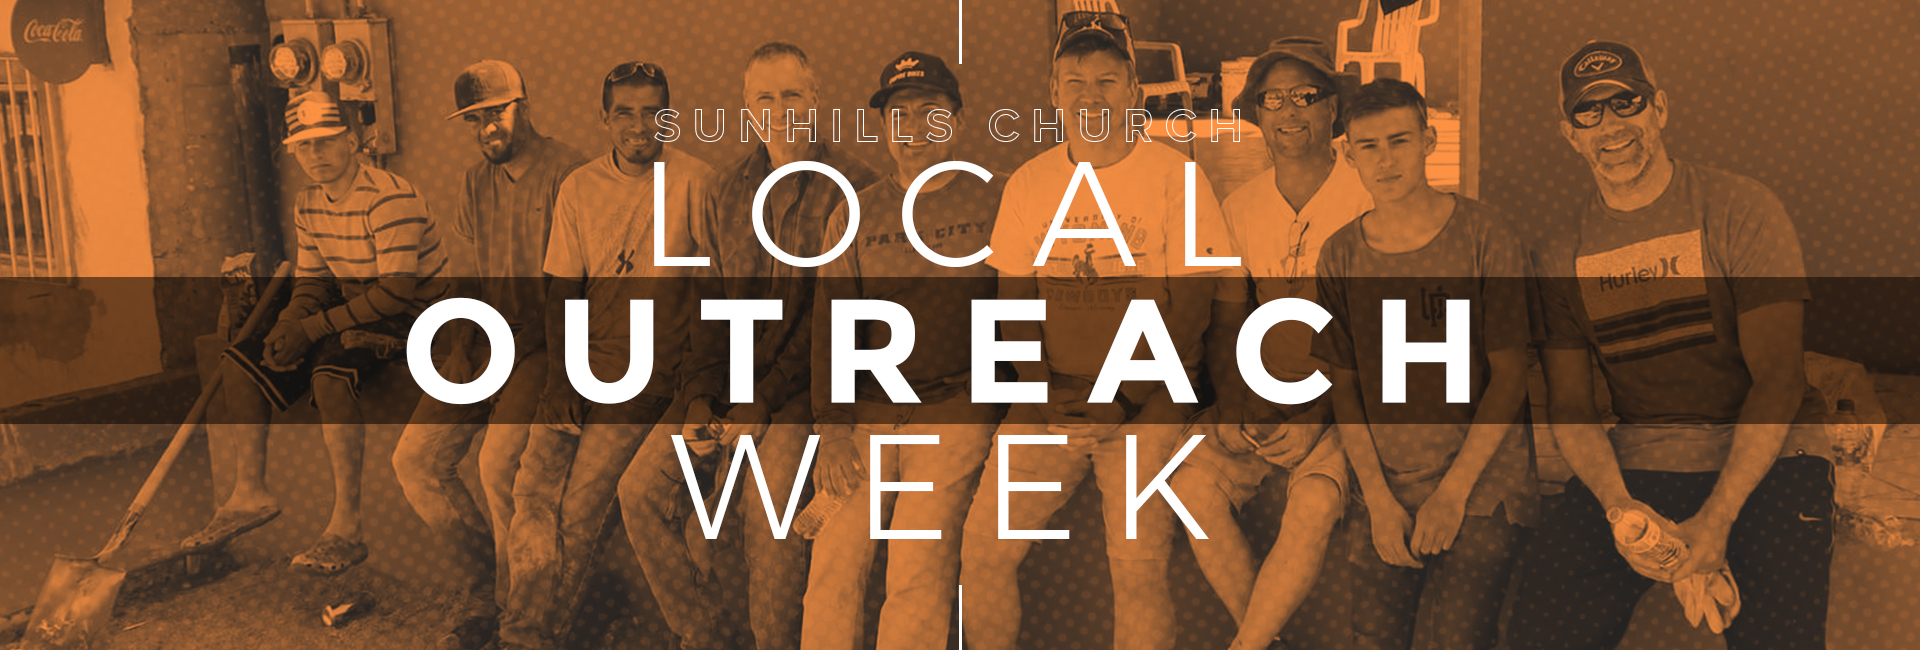 Local Outreach Week